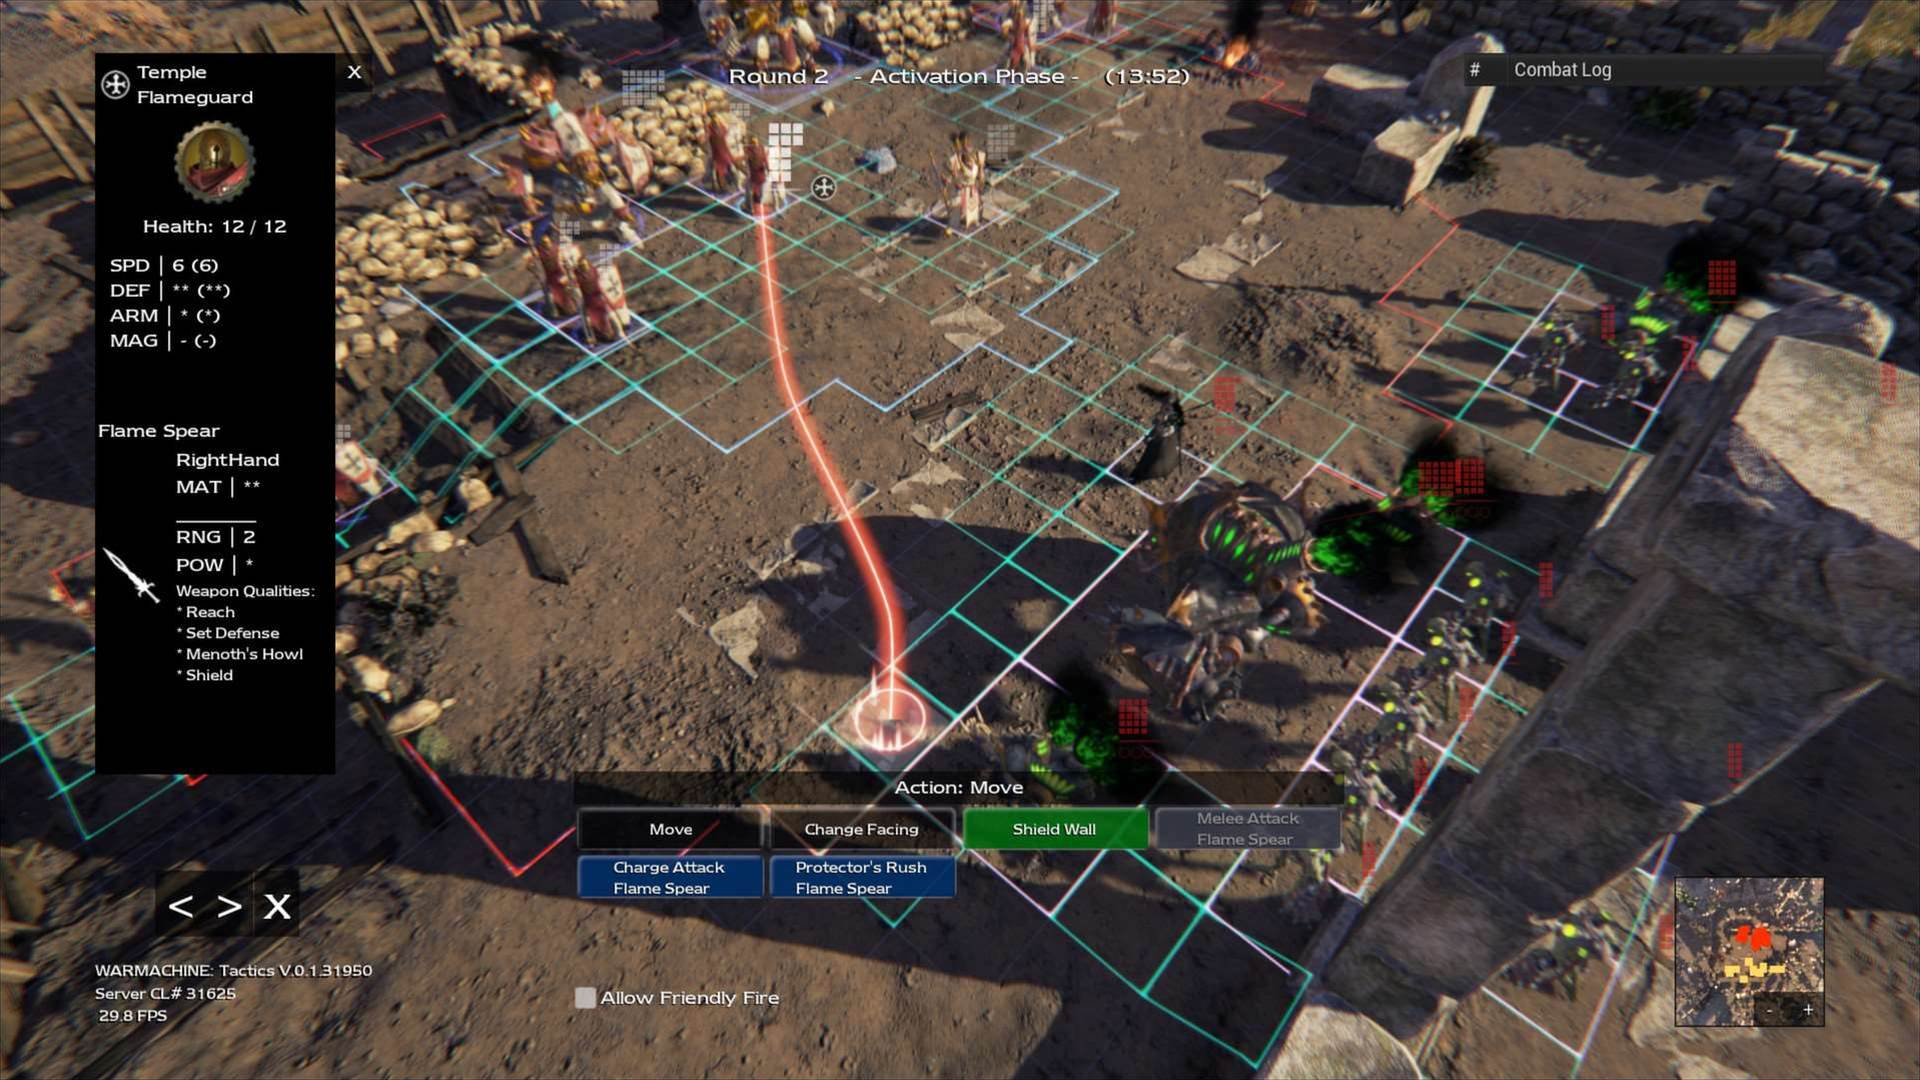 Warmachine: Tactics hits Steam Early Access